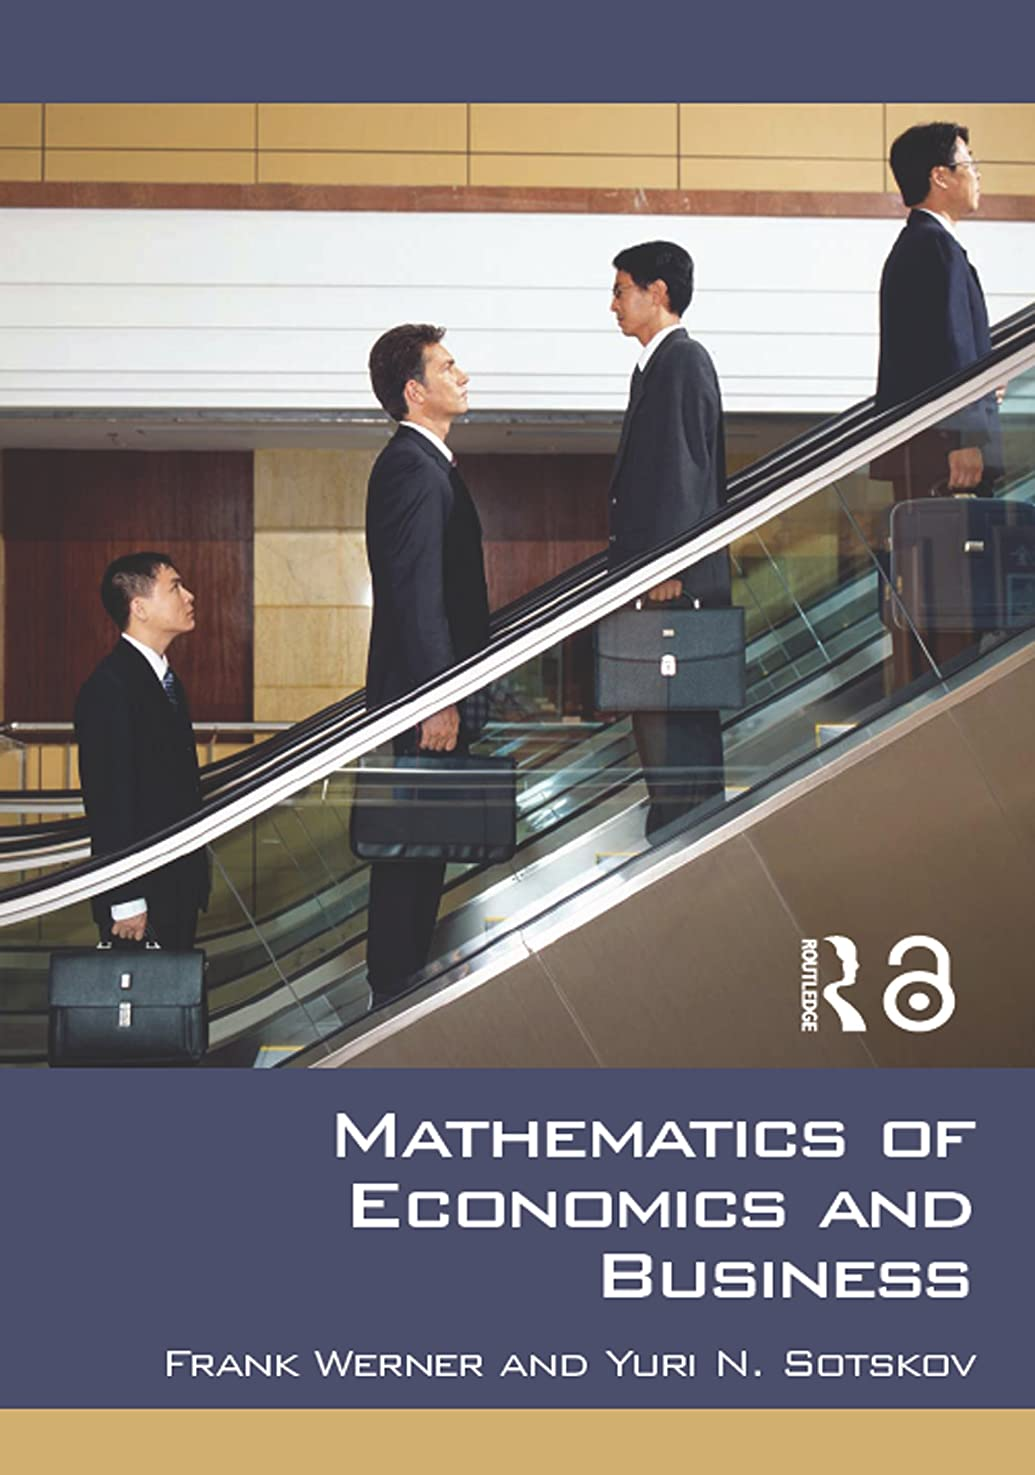 黙認するボウル貸し手Mathematics of Economics and Business (English Edition)